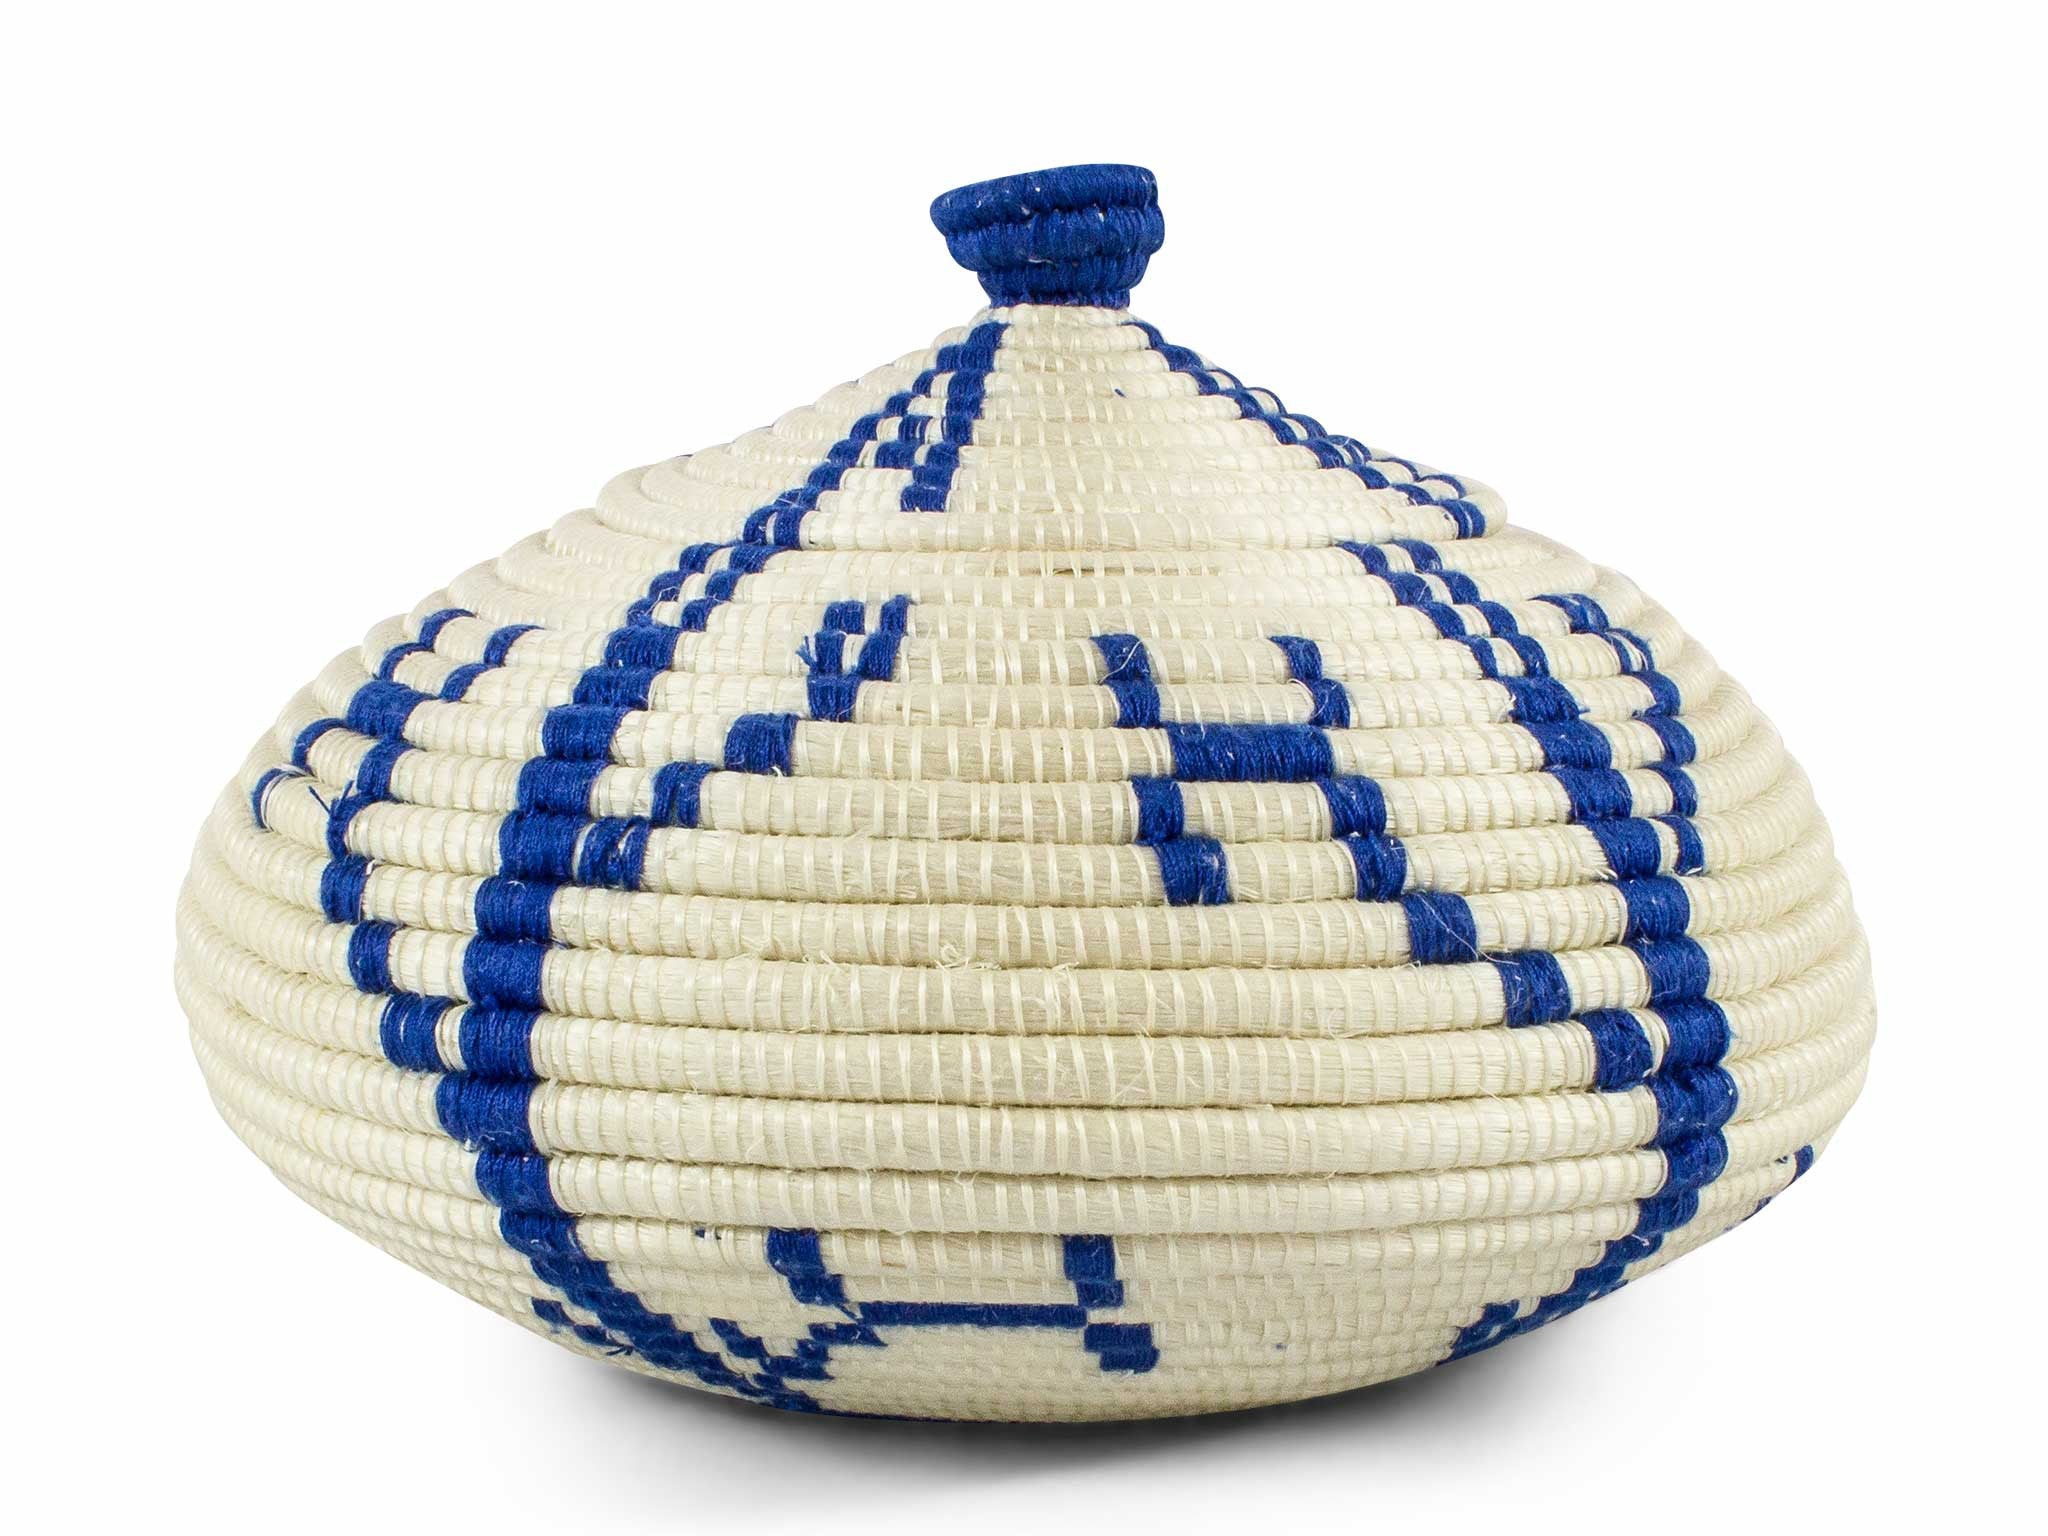 Piece + Parcel - Bluevine Fair Trade Basket -